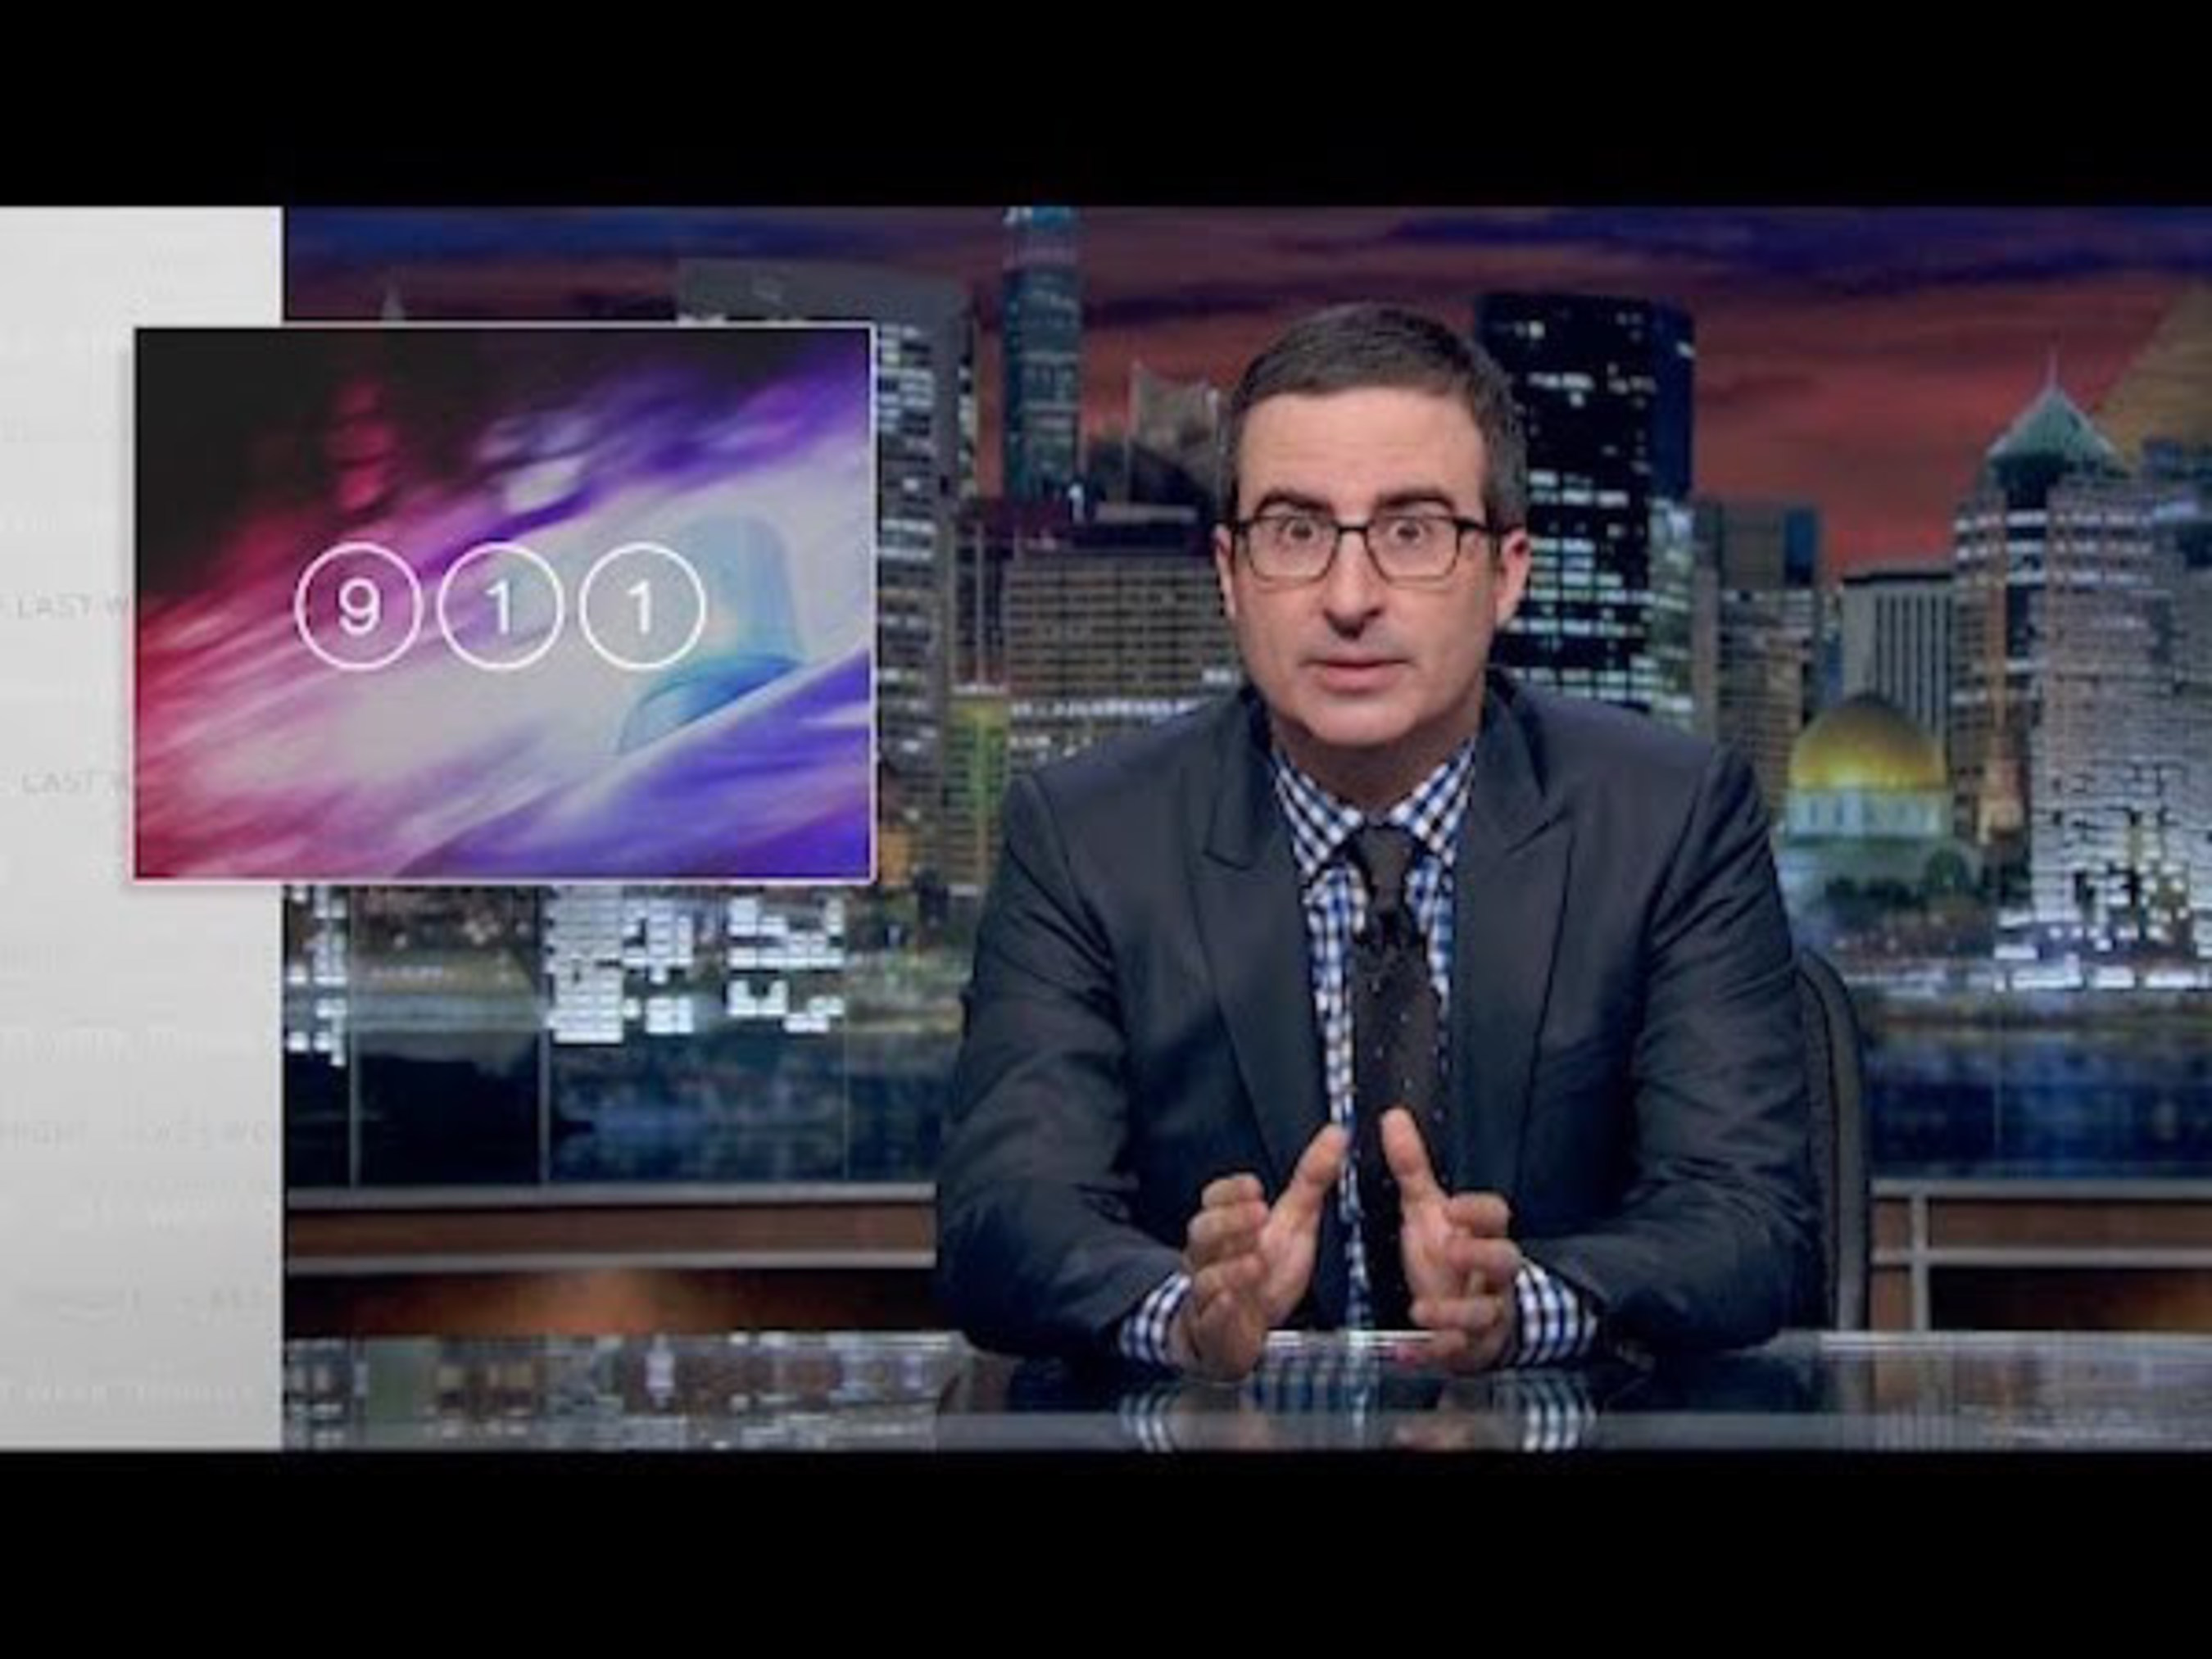 Critical Shortcomings of 911 Systems a Featured Segment on HBO's Last Week Tonight With John Oliver